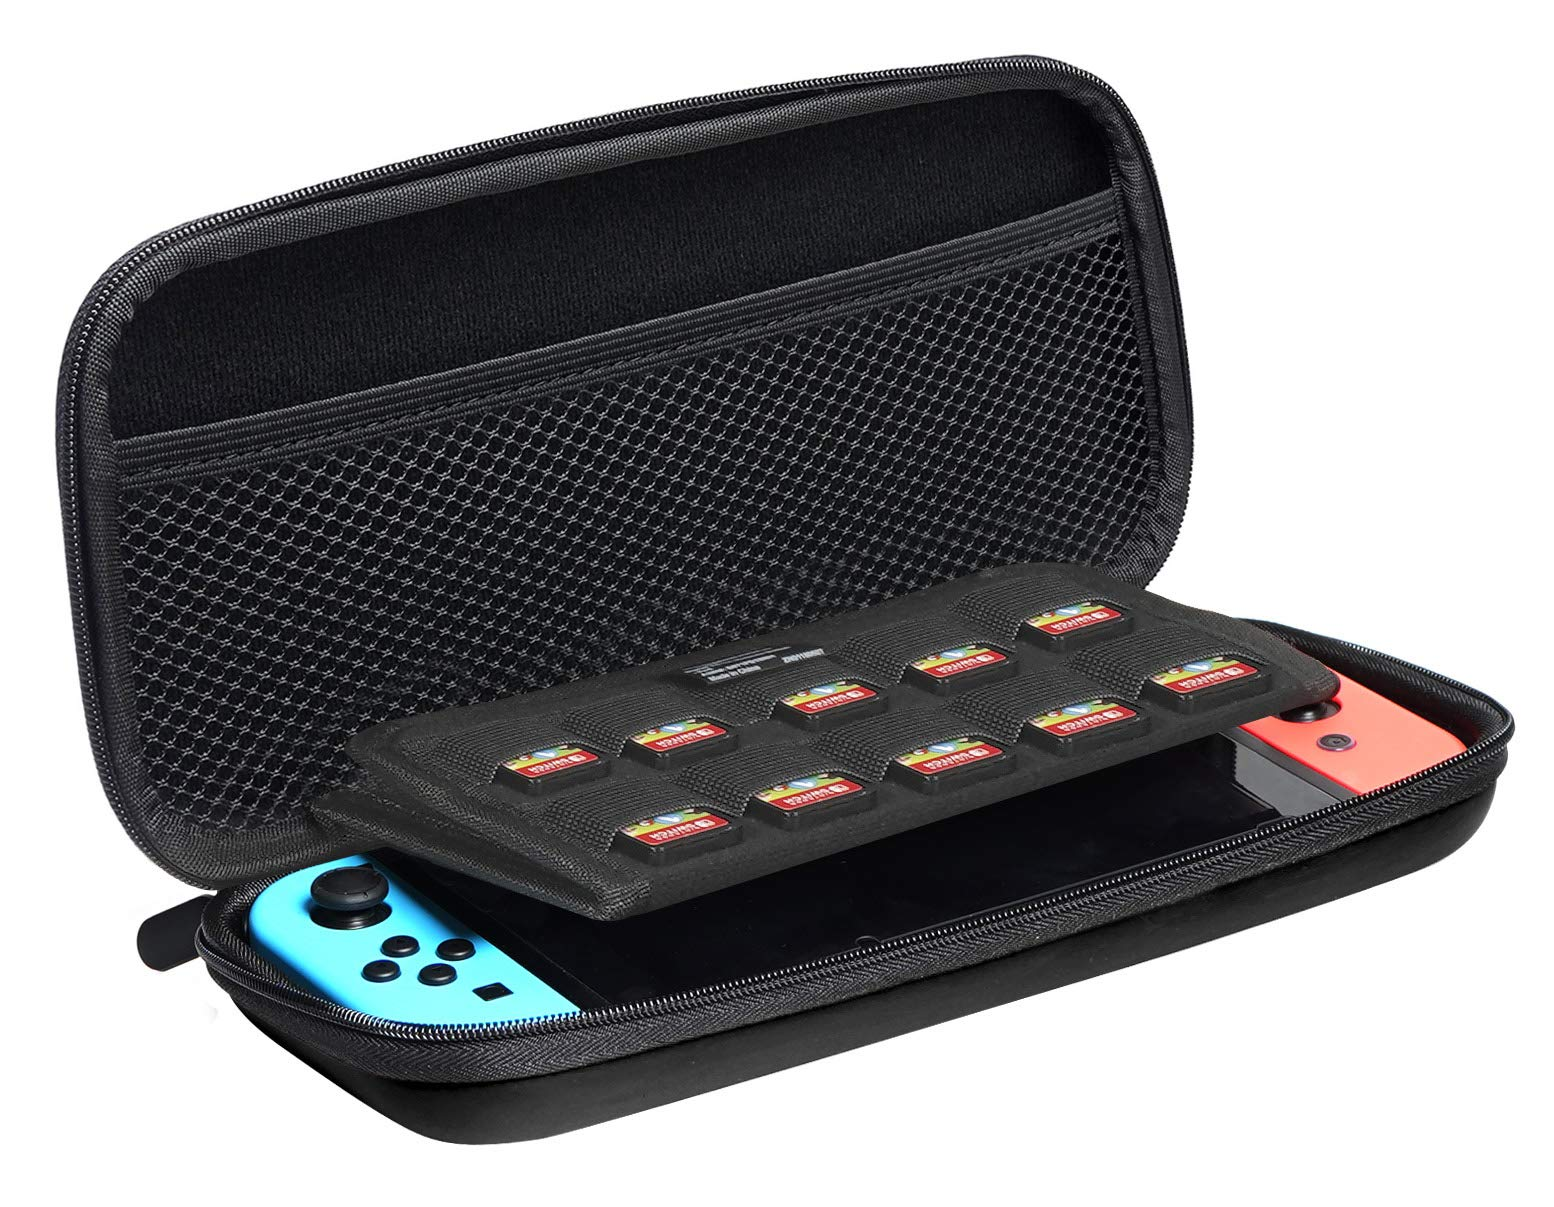 Amazon Basics Carrying Case for Nintendo Switch - Black